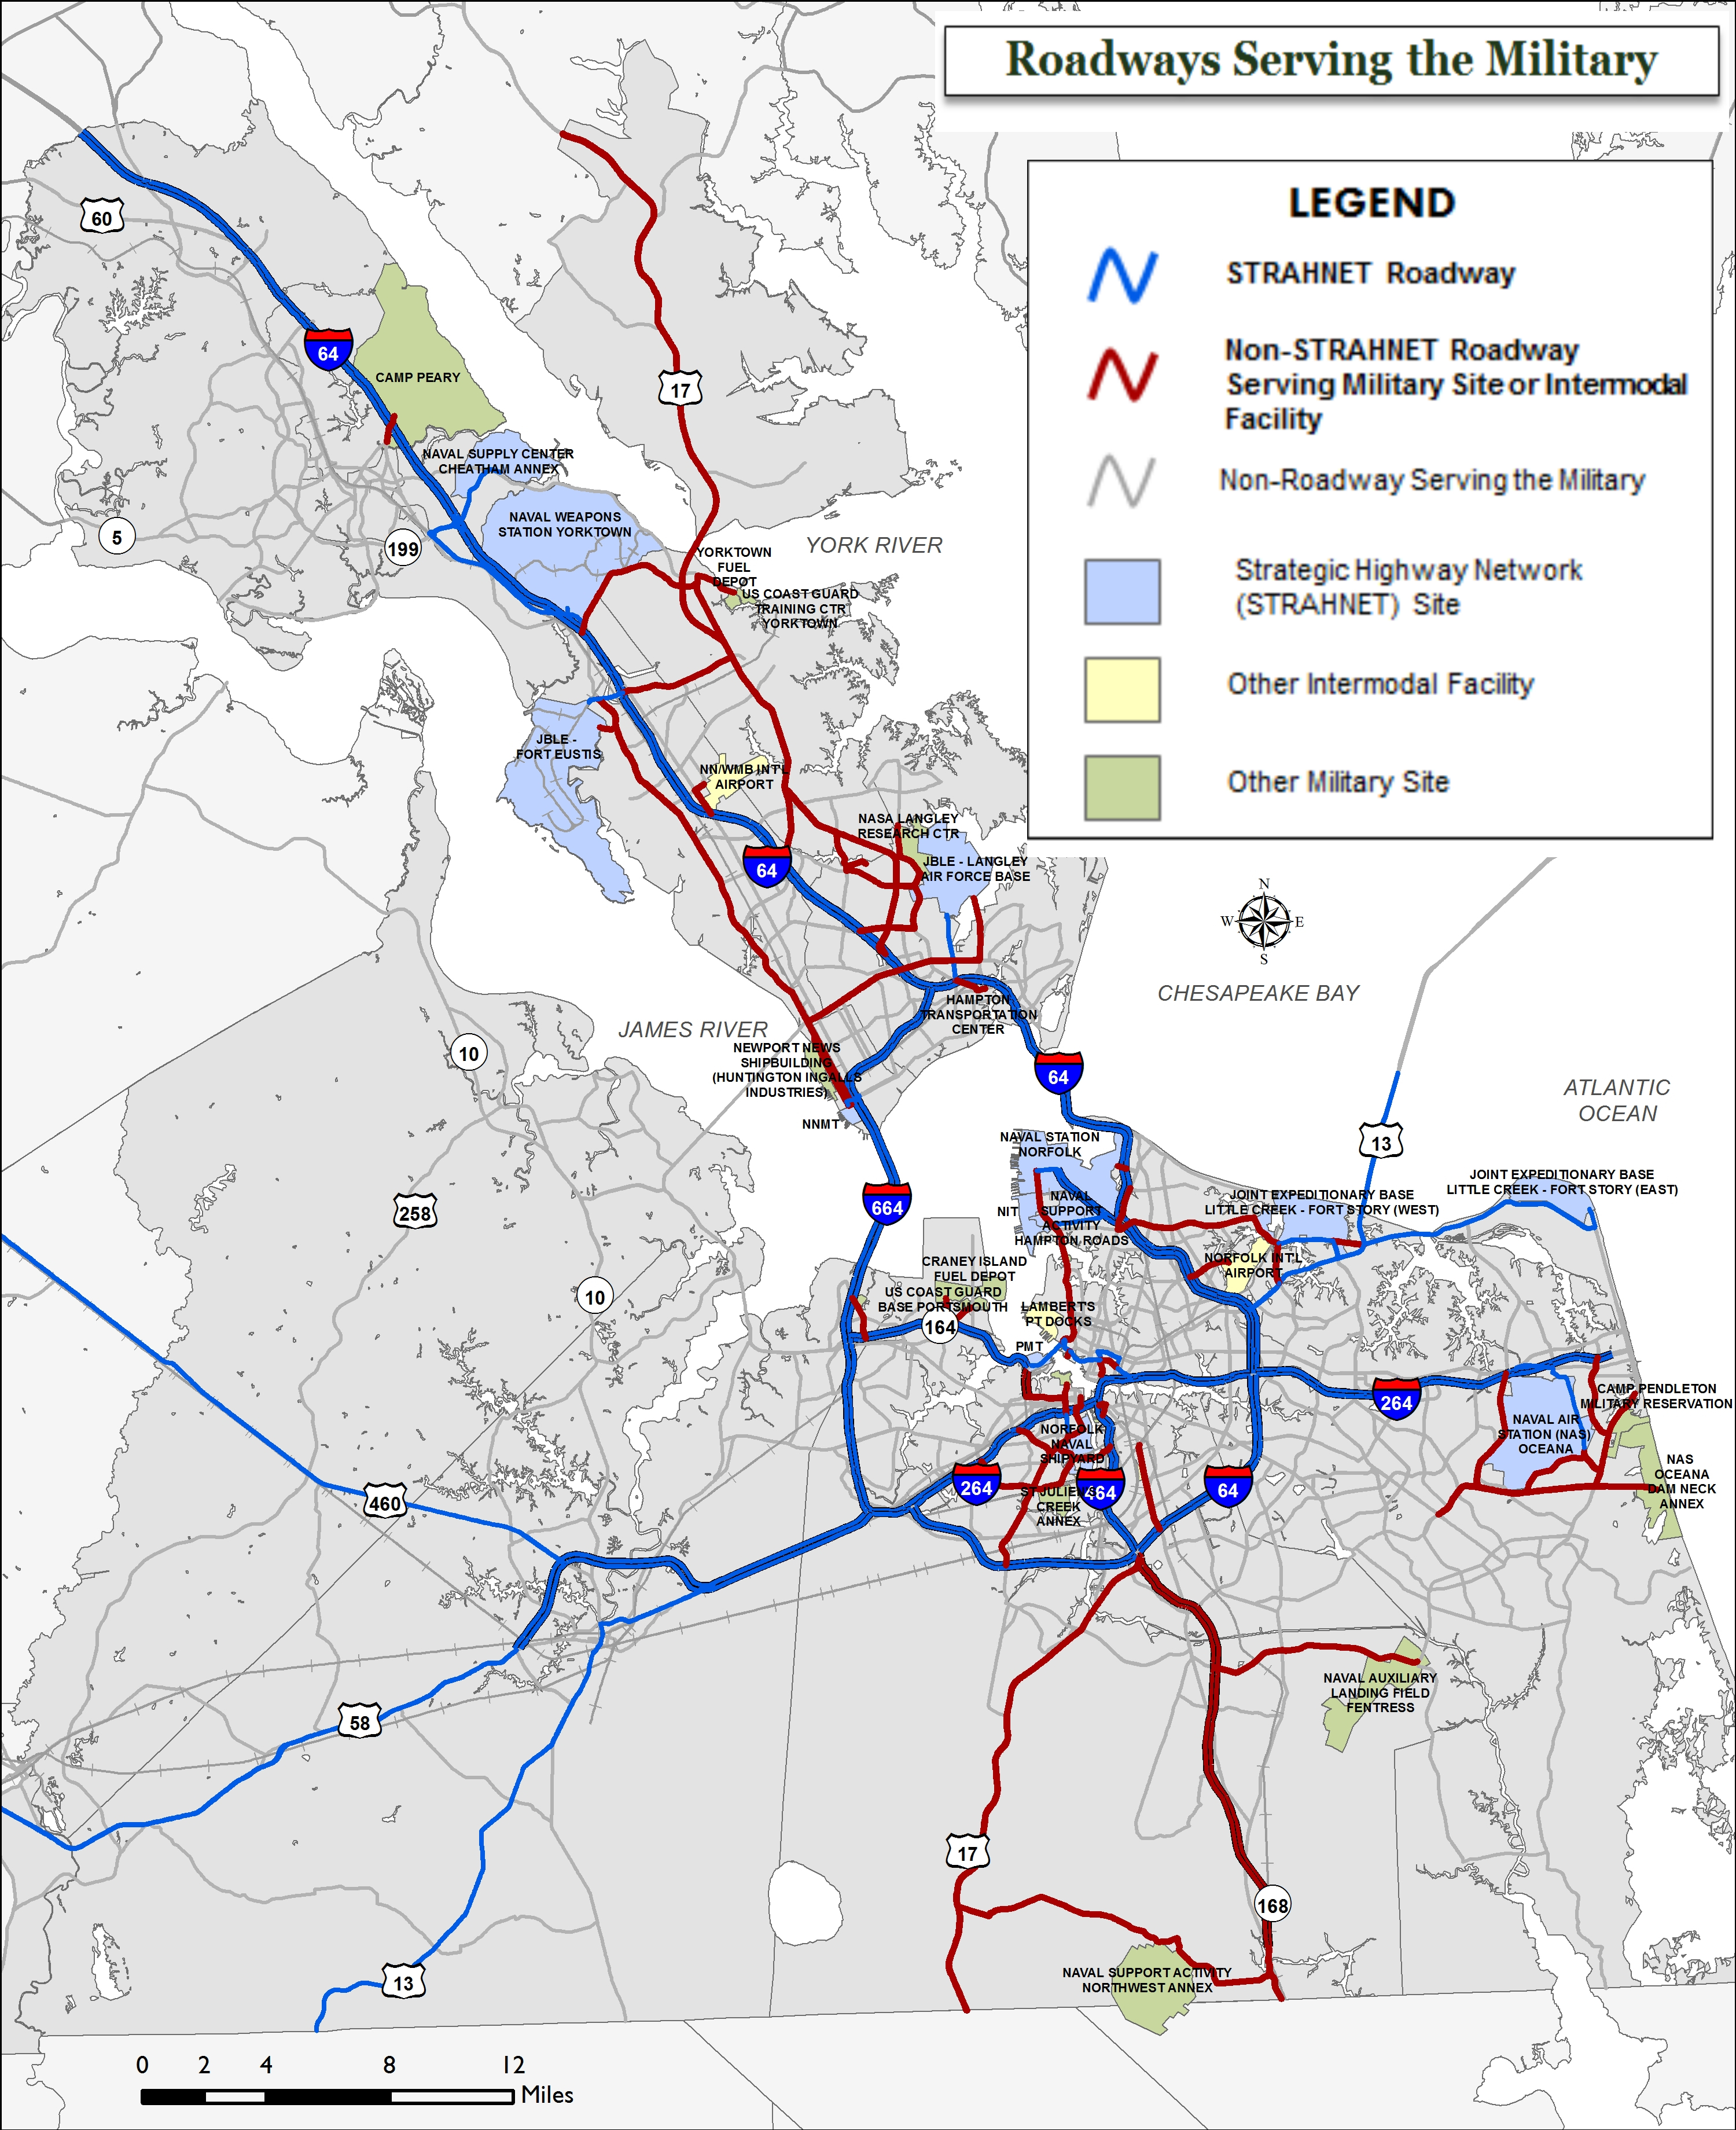 Map highlighting the roadways that server the local military installations.